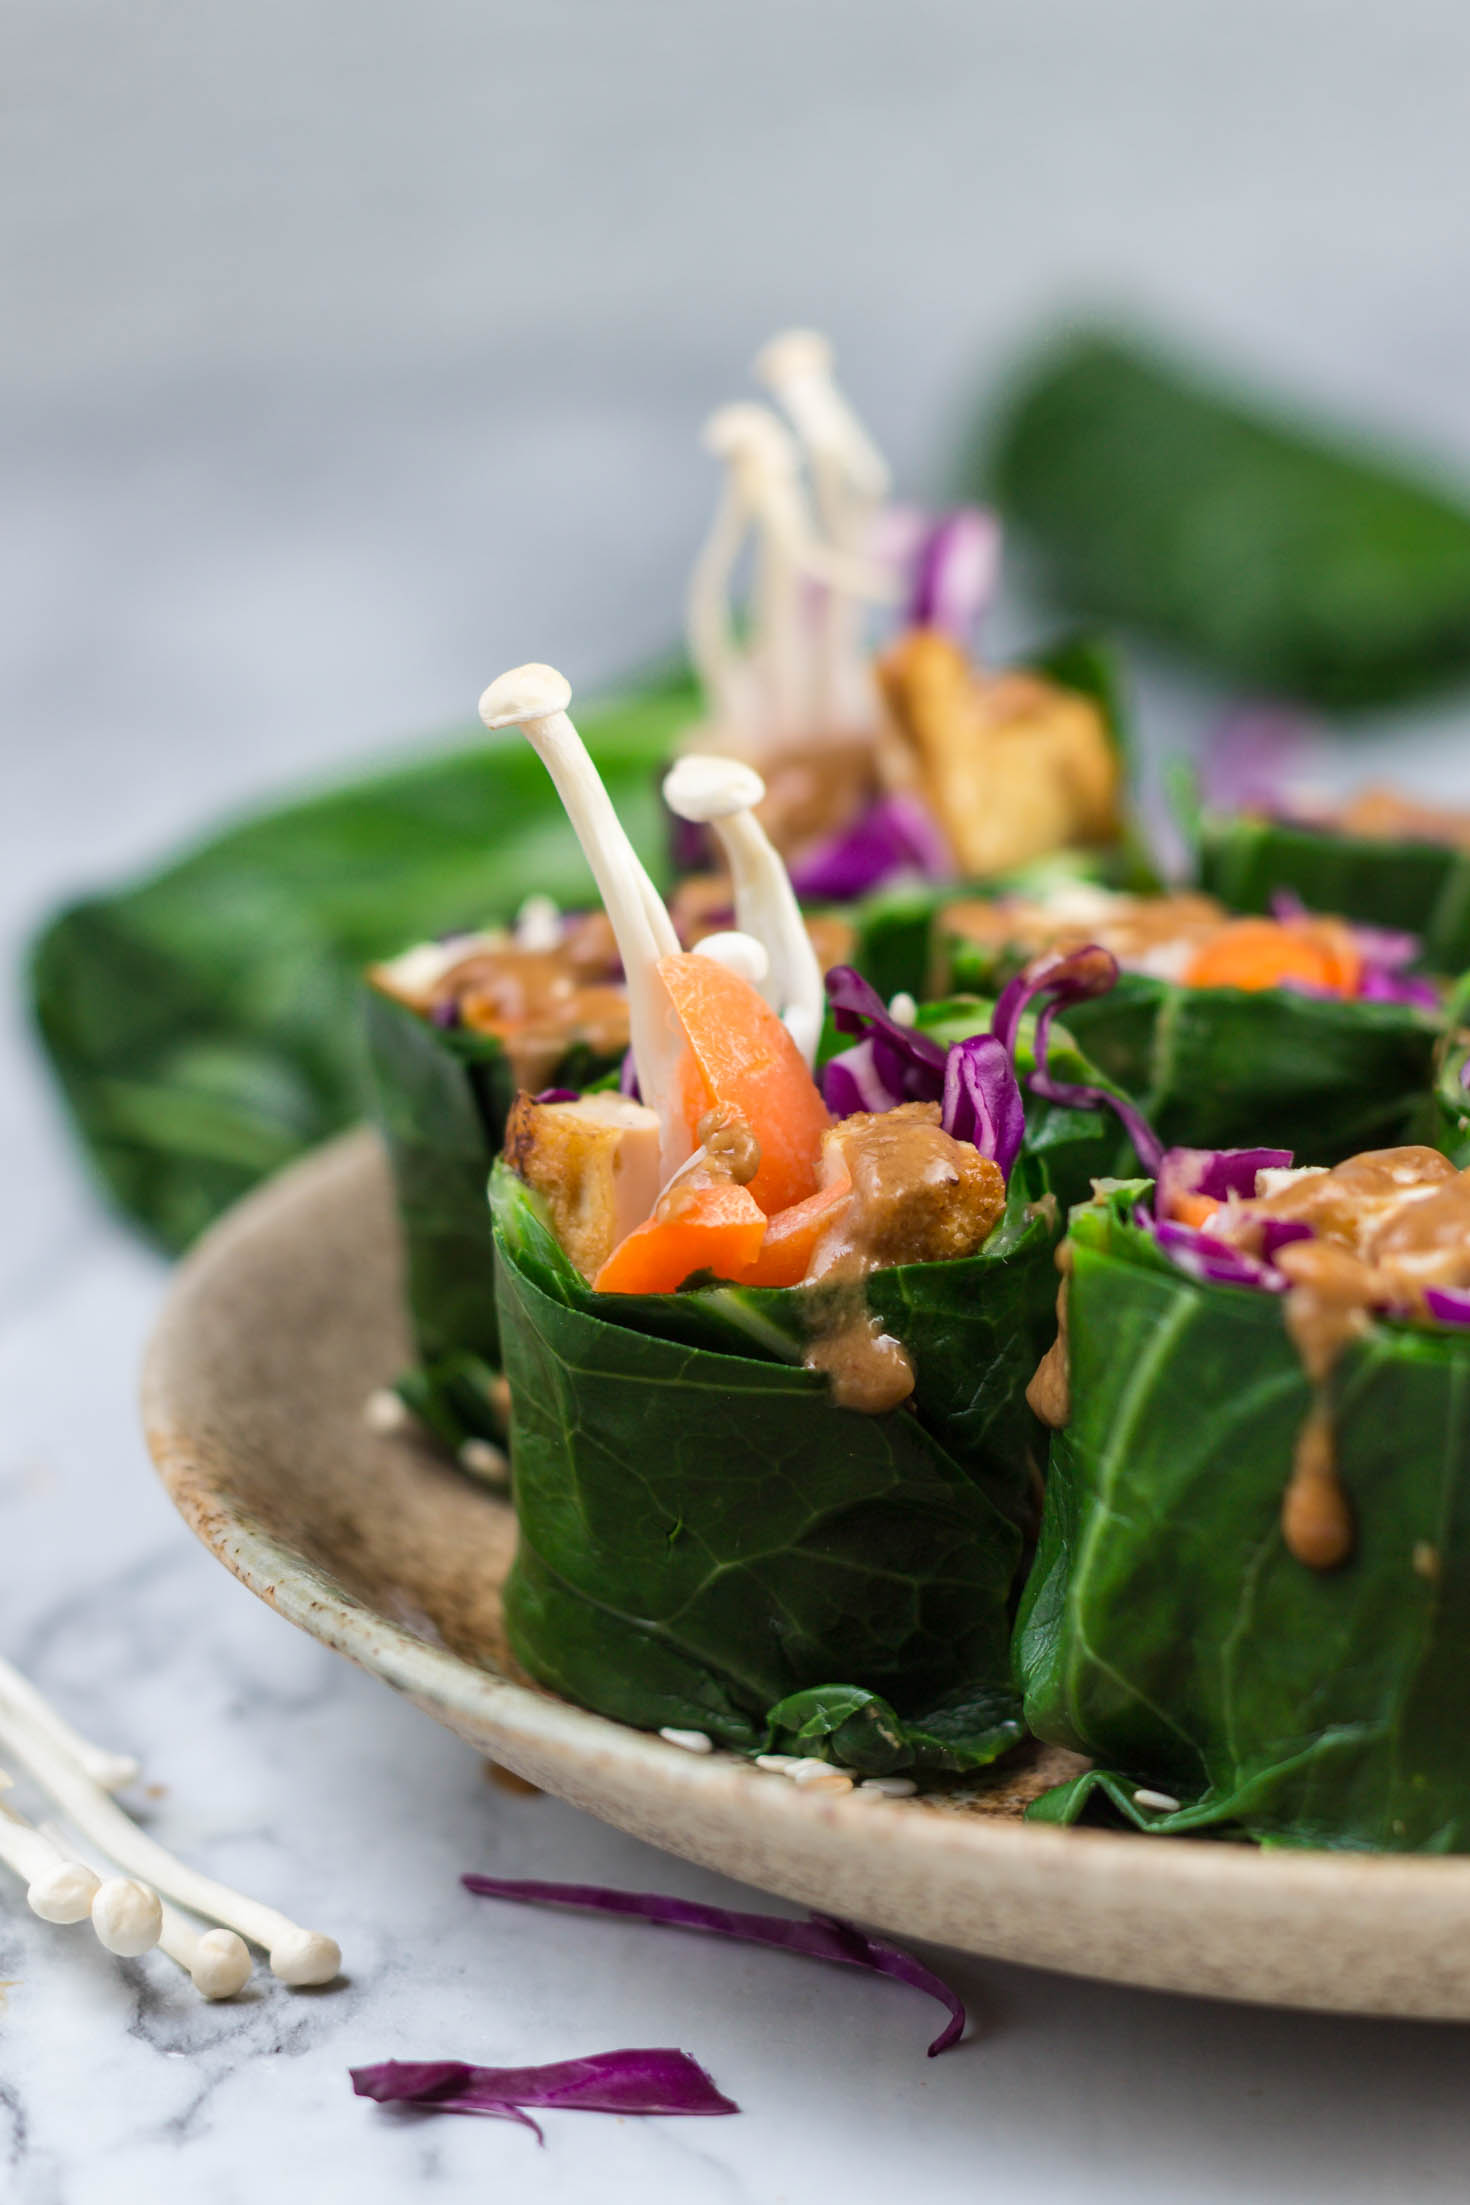 Grain-free Collard Green Rolls with Roasted Tofu and Enoki Mushrooms-side view-These grain-free collard green rolls with roasted tofu and enoki mushroom can be made any time of year.